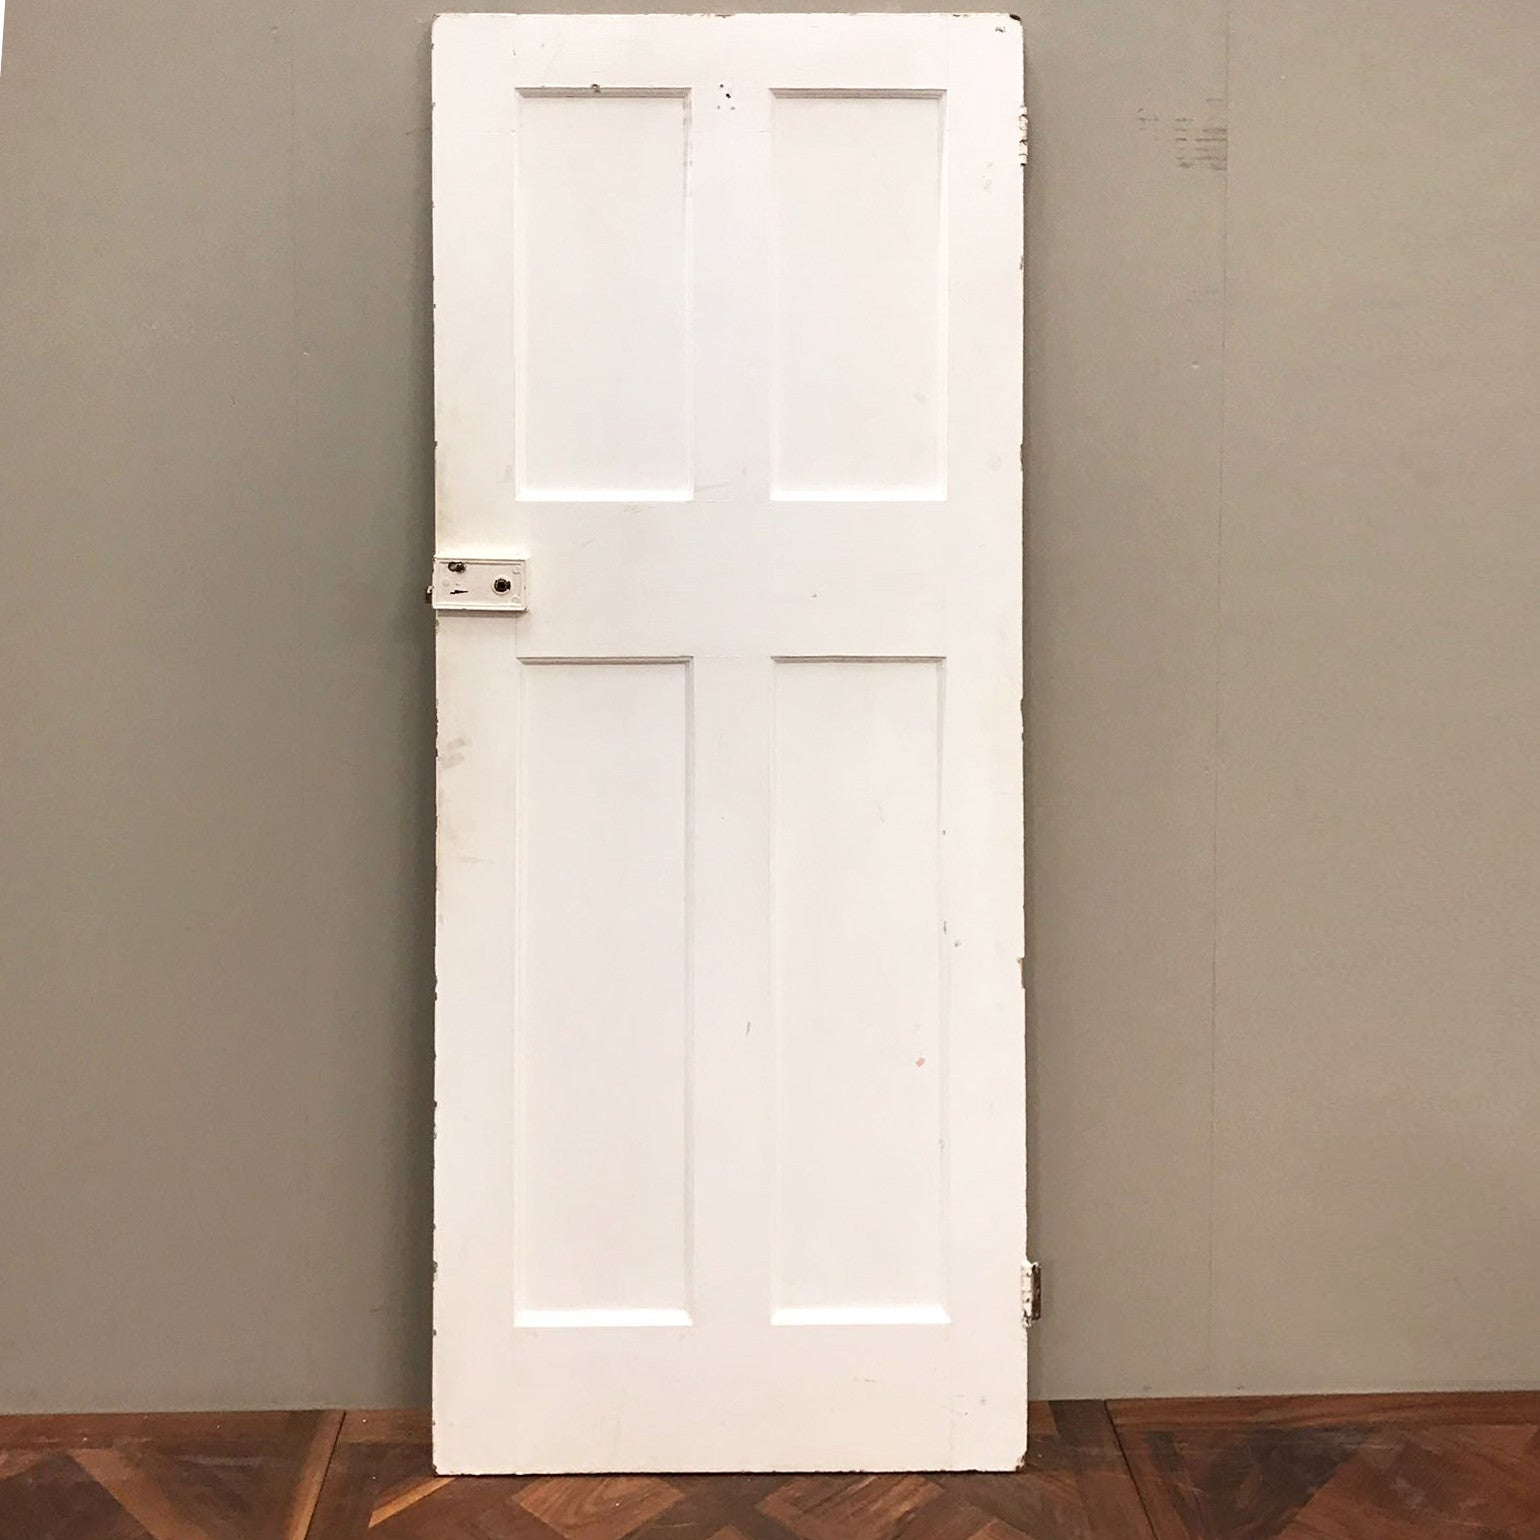 Reclaimed Victorian Four Panel Door - 192cm x 75cm x 3.5cm - architectural-forum